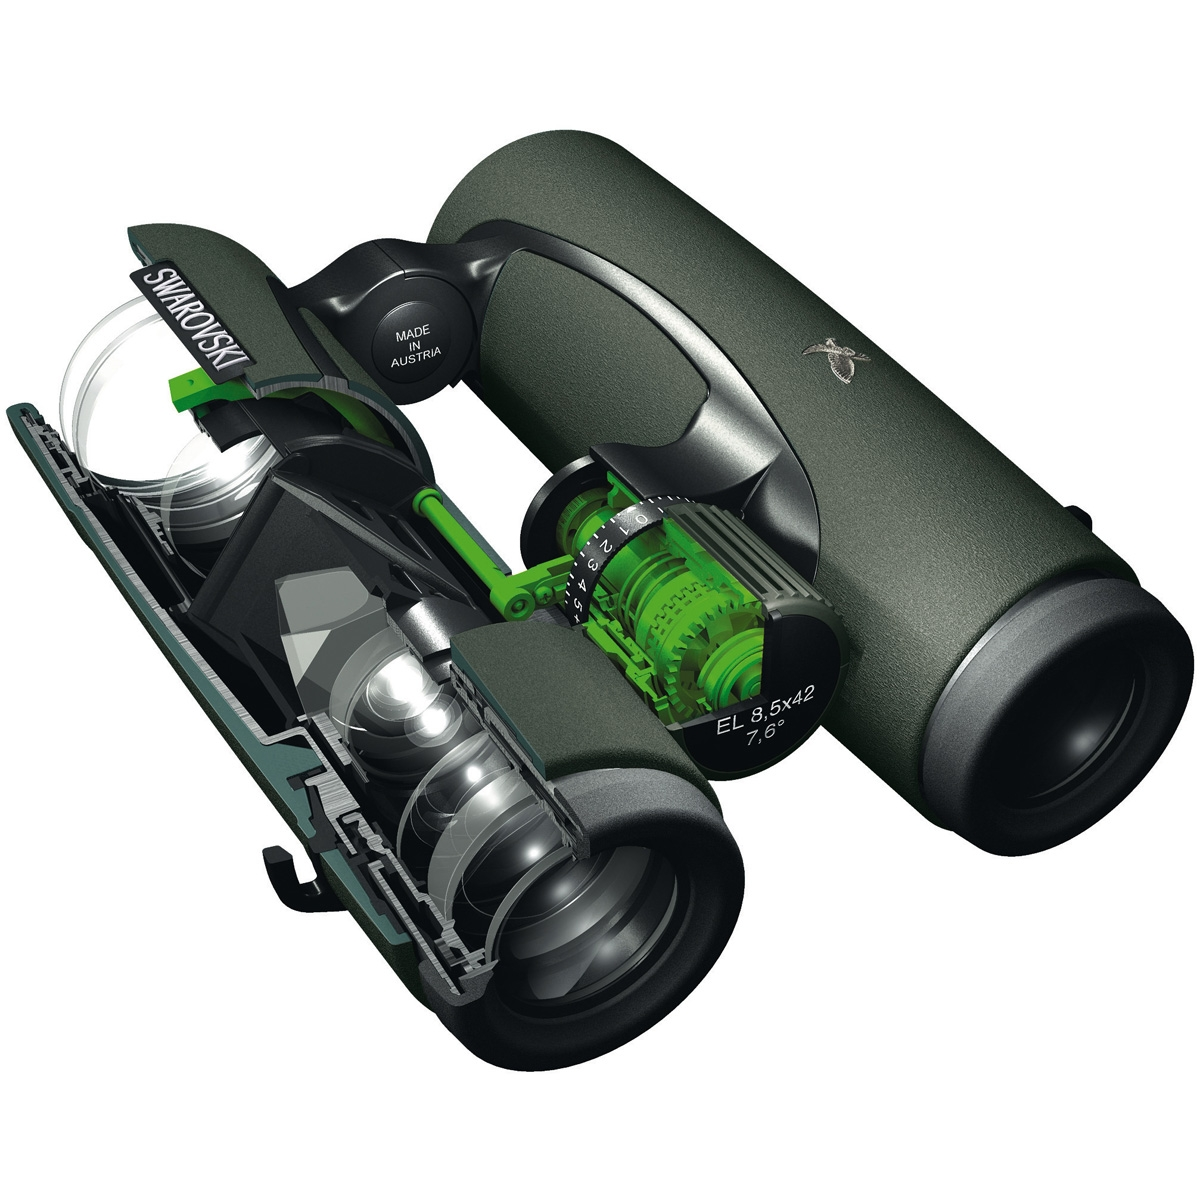 In Swarovski Ccsp Comfort Carrying Strap Pro For Field Pro Binoculars Novel Design;